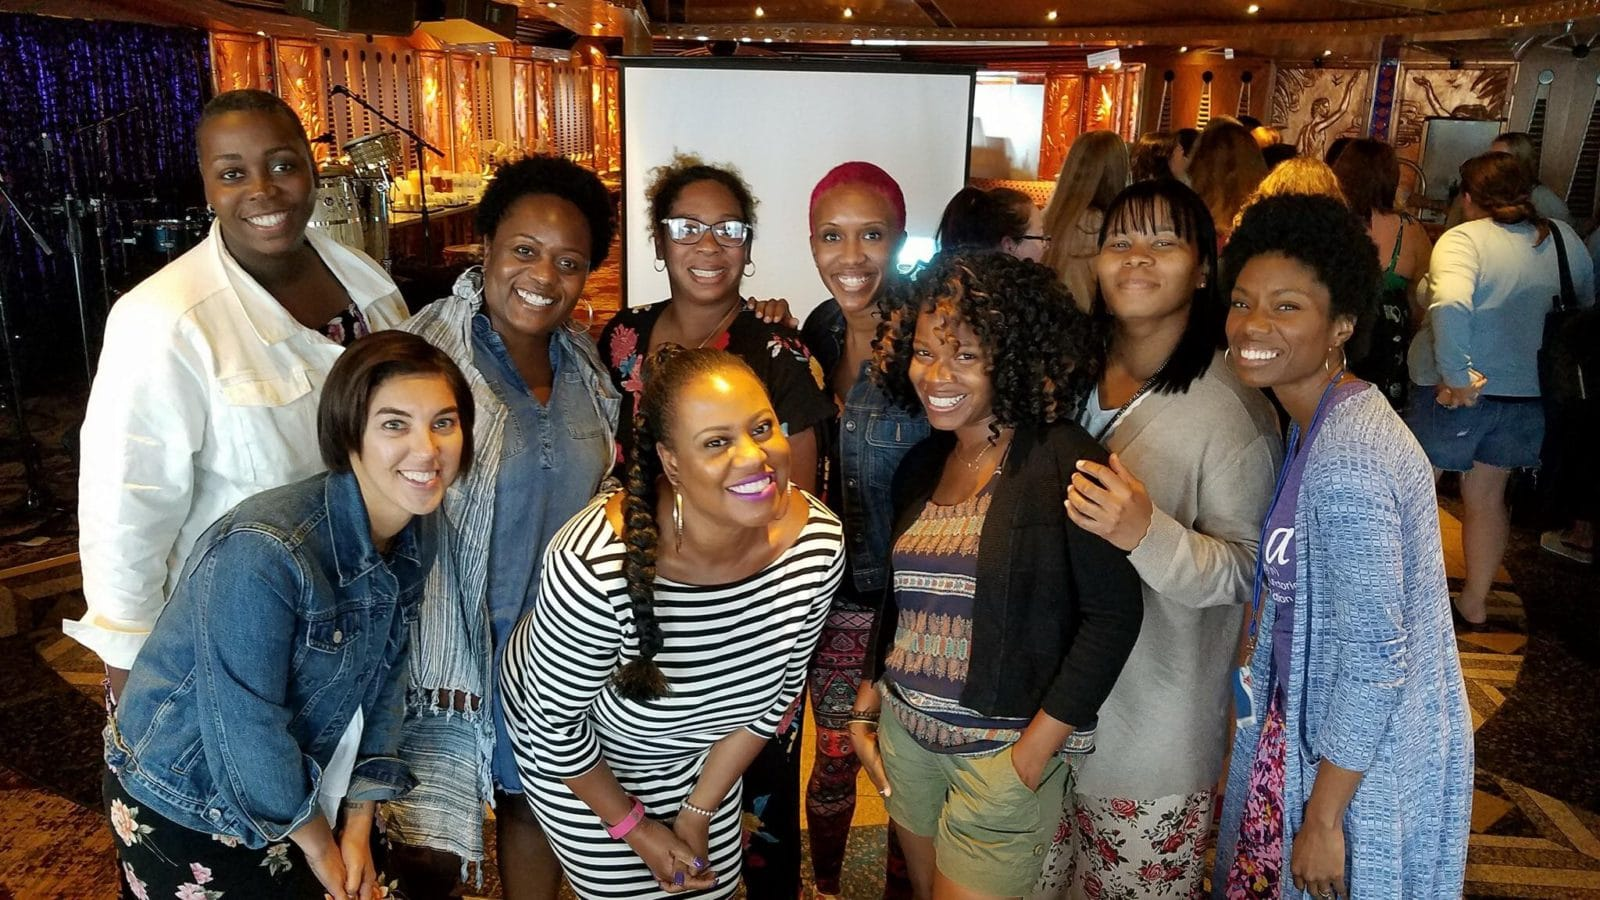 Here is my honest and no-holds-barred post about my experience at the first Permission to Hustle Cruise. It has inspired me to once again focus on my WHY.